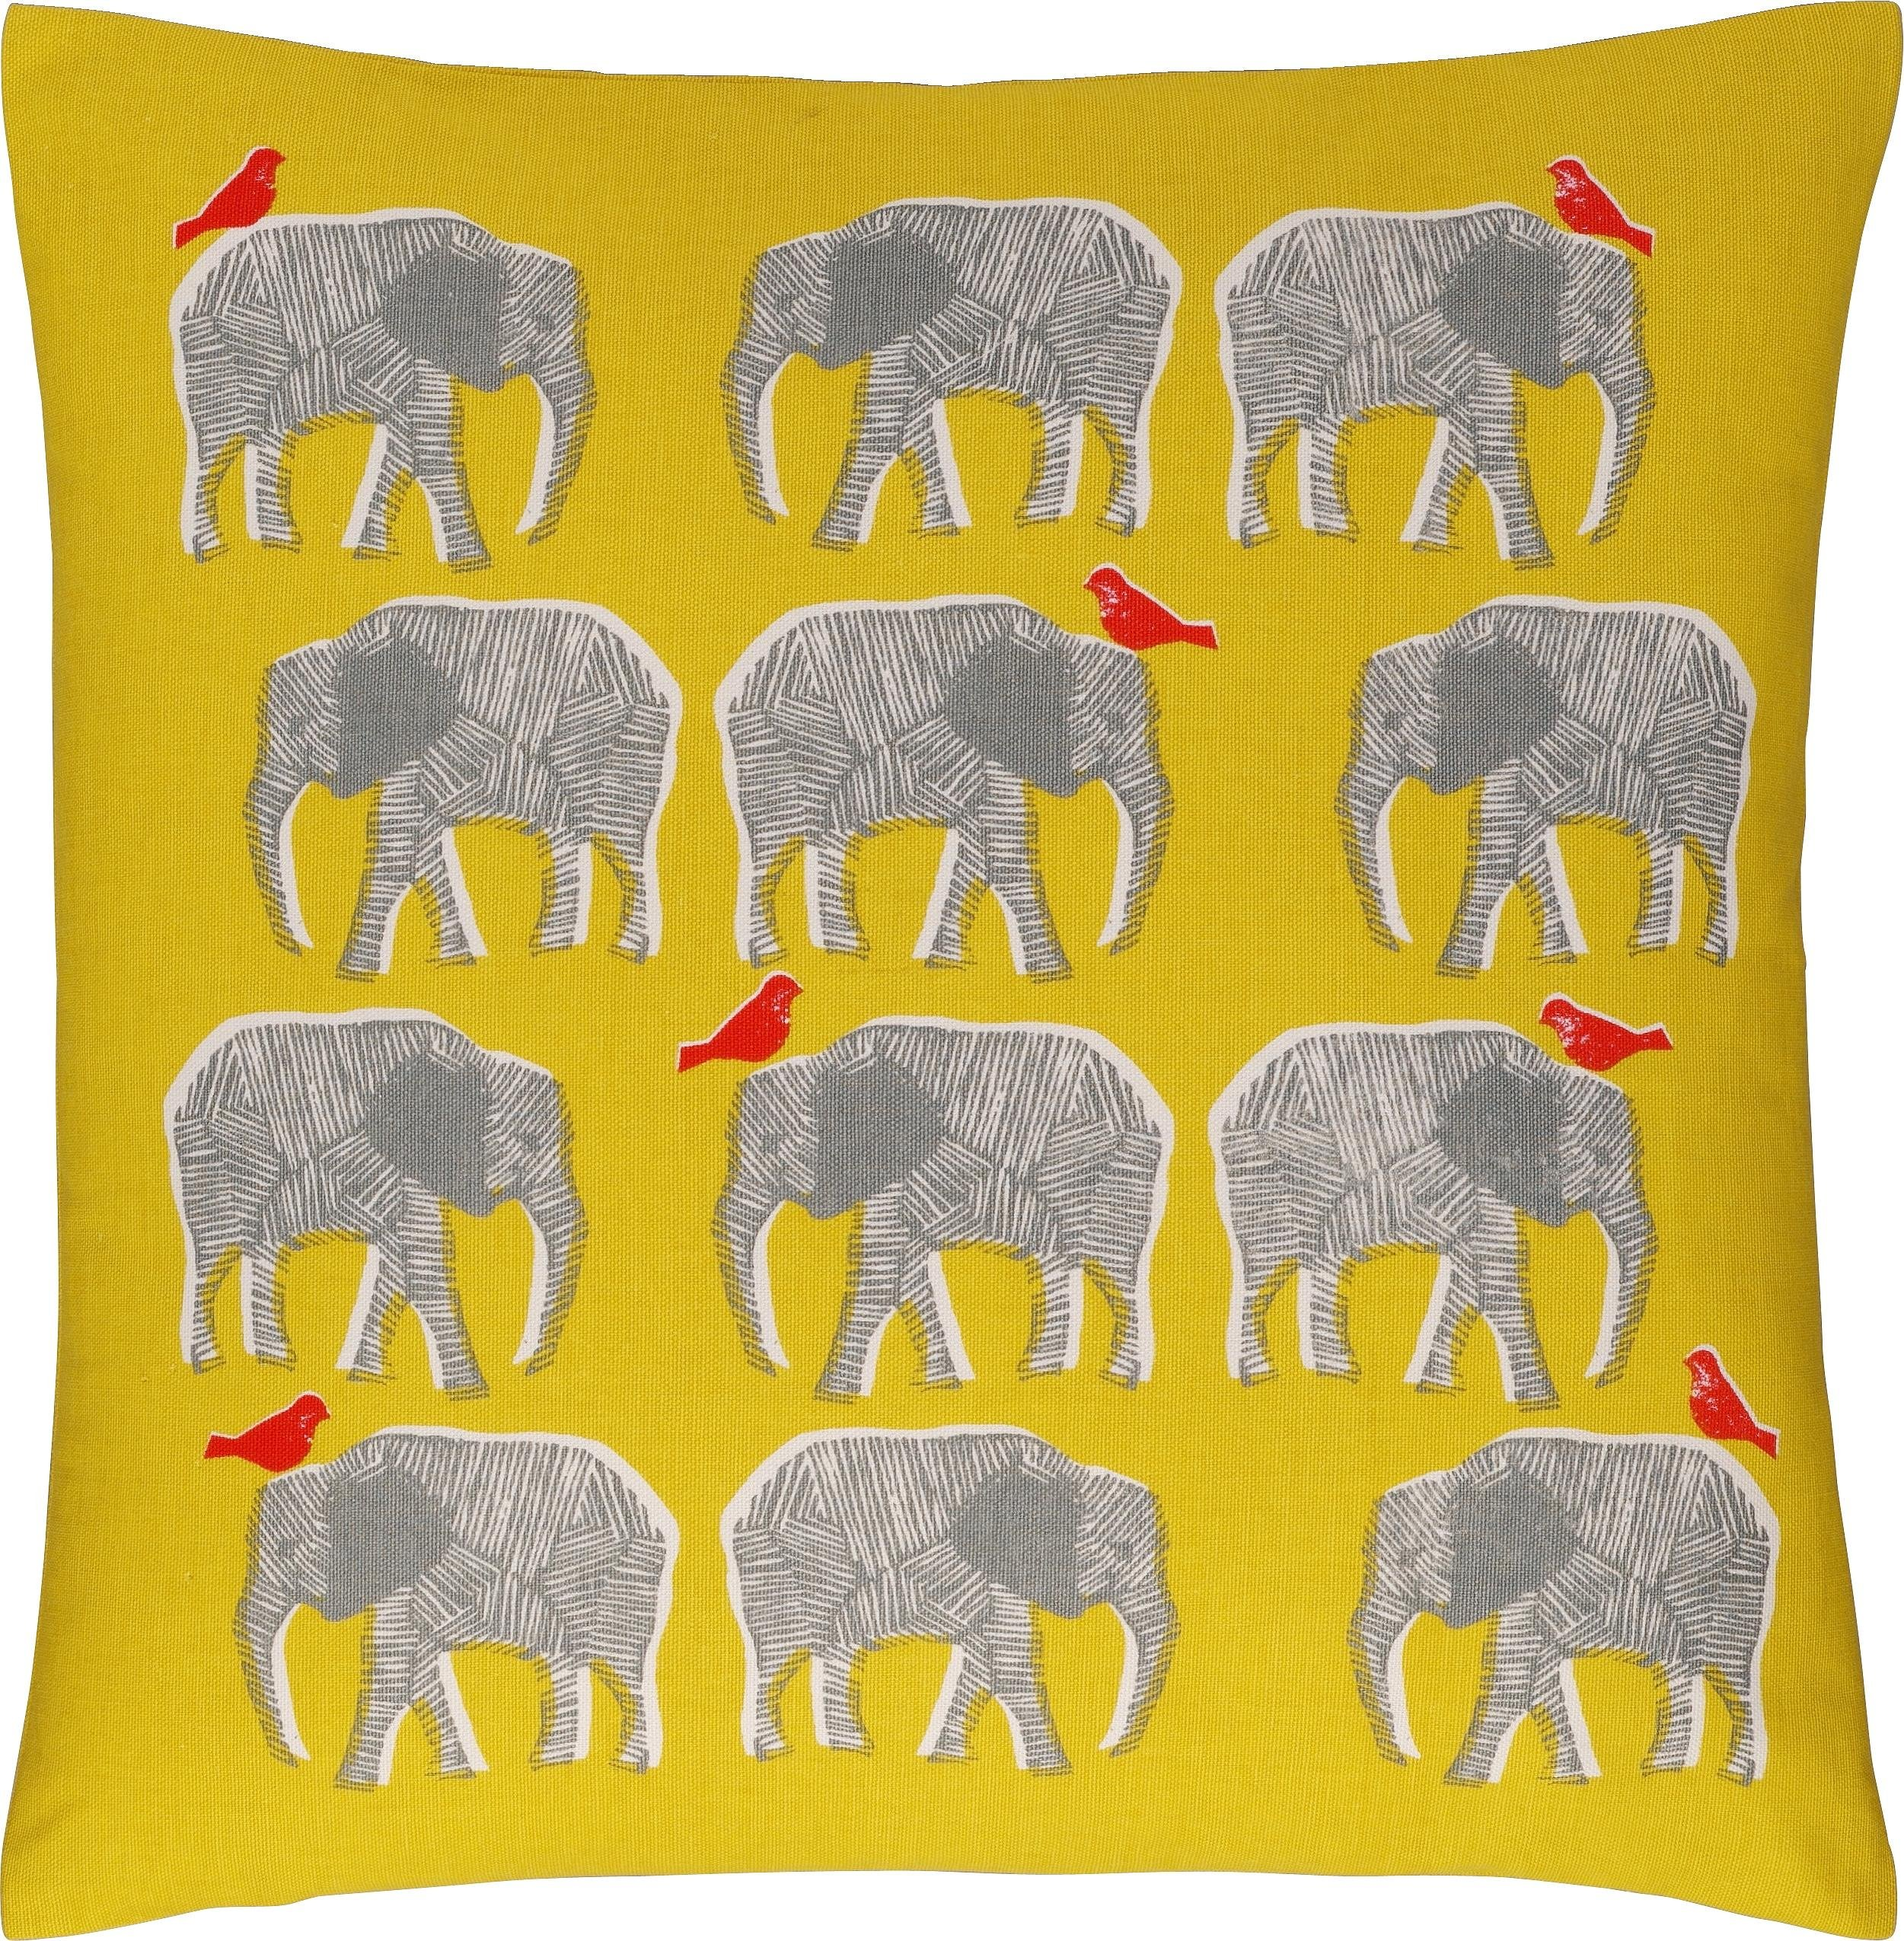 Habitat Topsy Elephant Pattern Cushion - Yellow